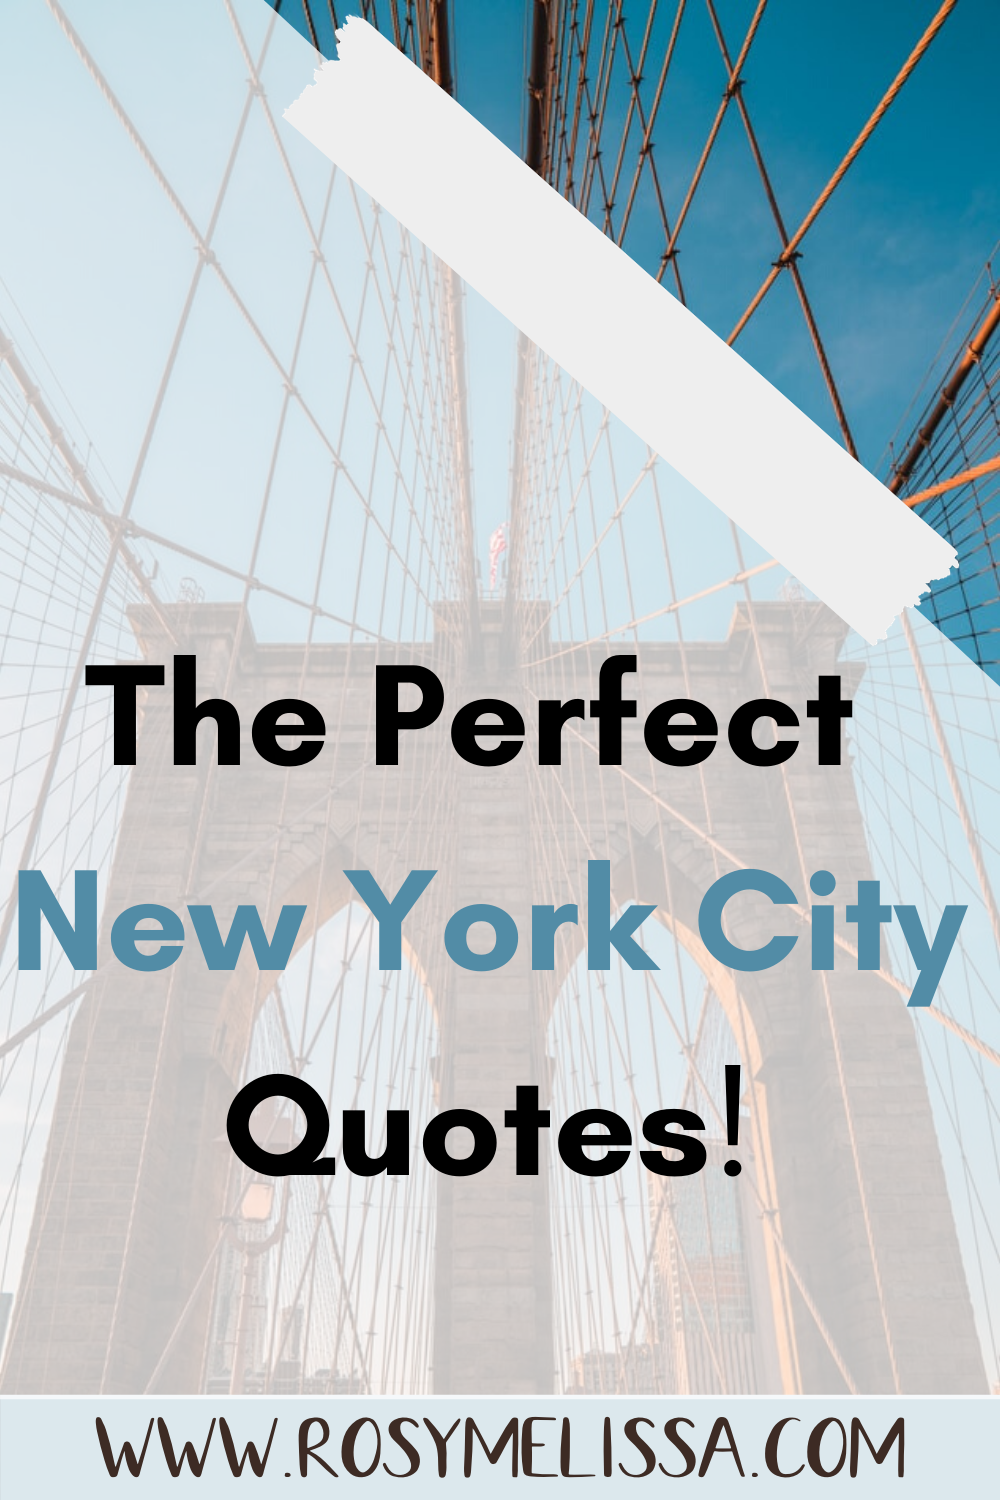 62 awesome new york city quotes, instagram captions and instagram puns about new york city, travel quotes